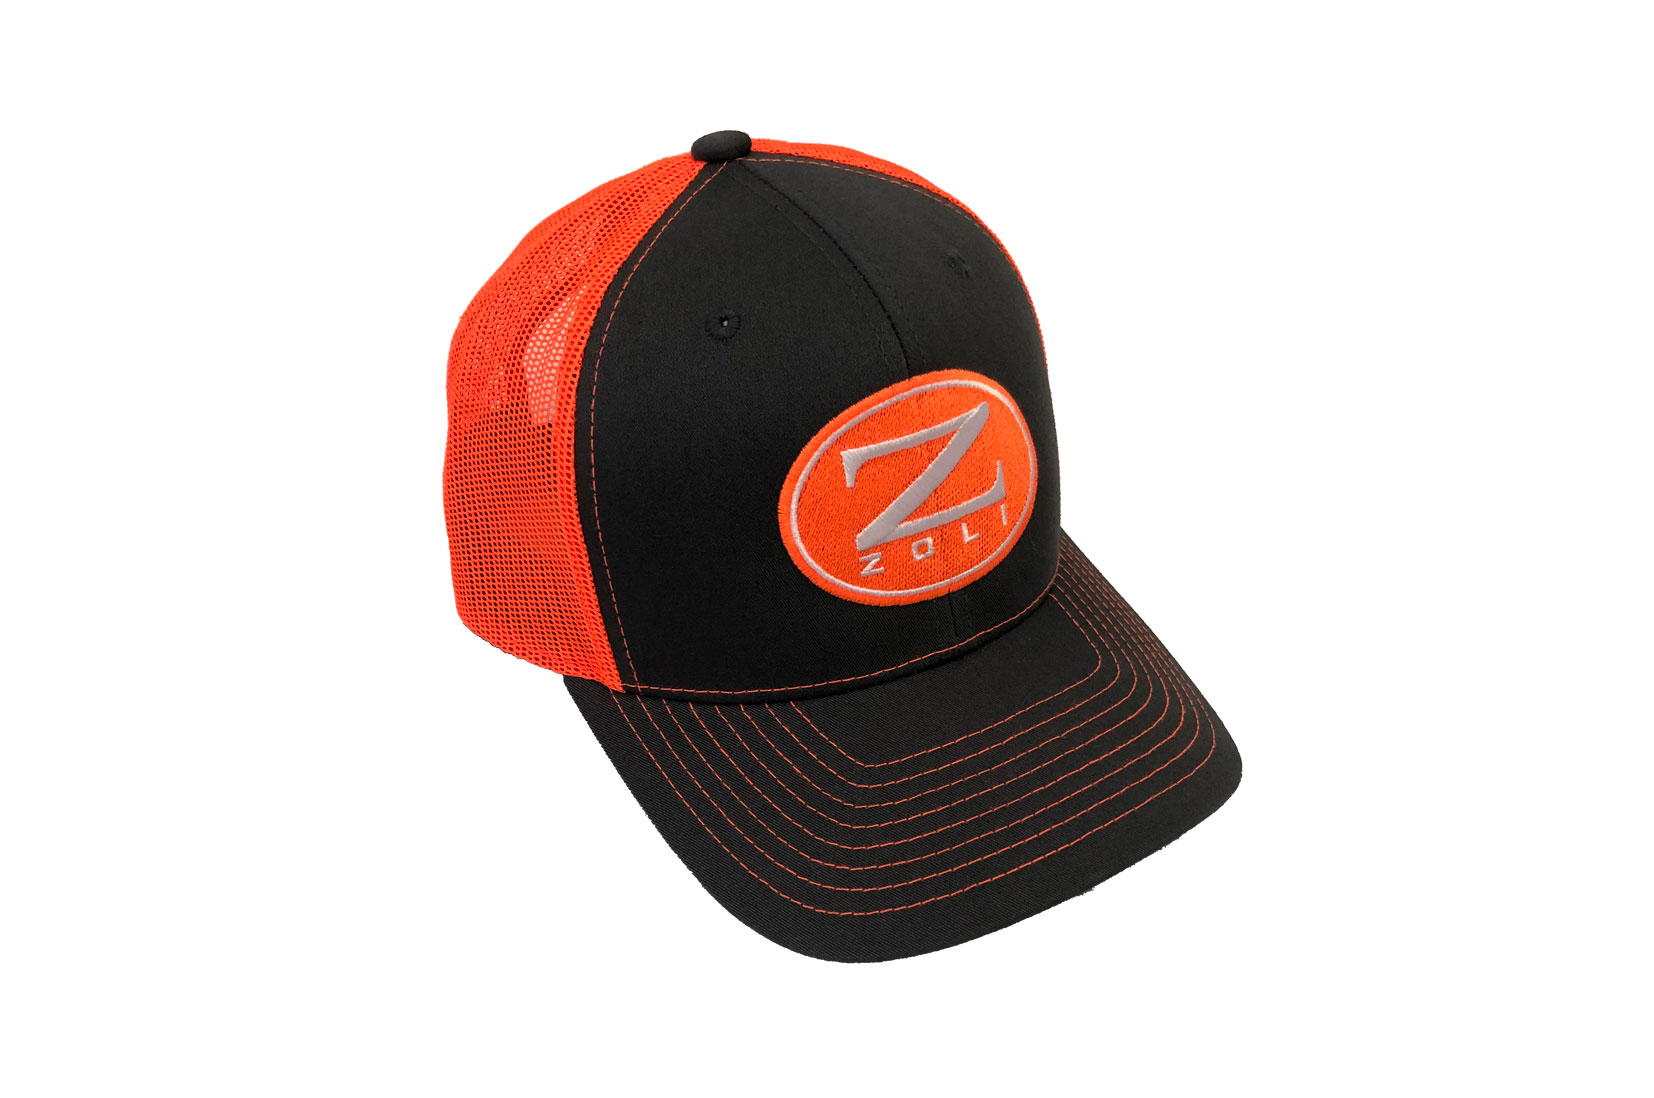 Zoli Embroidered Snap Back Hat (Orange)